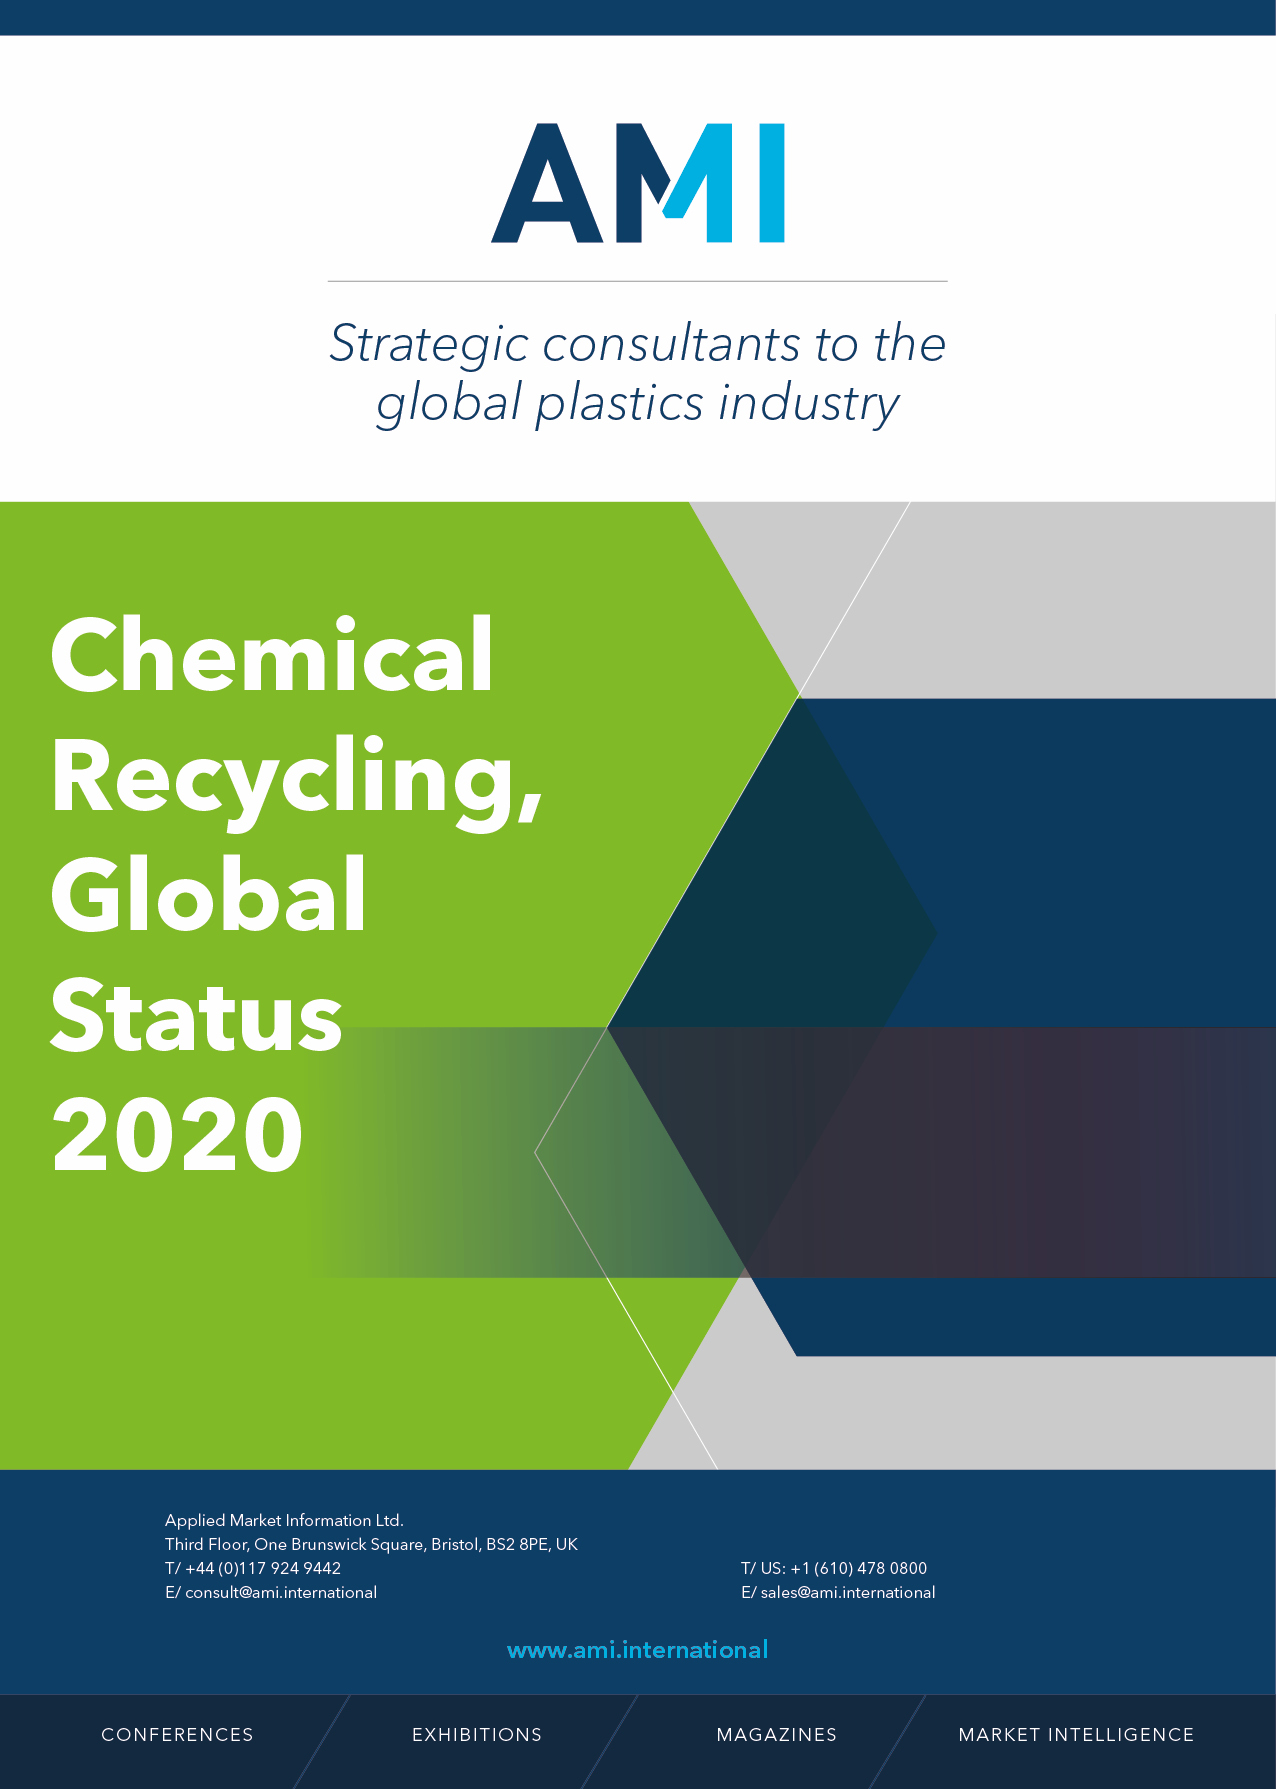 Chemical Recycling, Global Status 2020